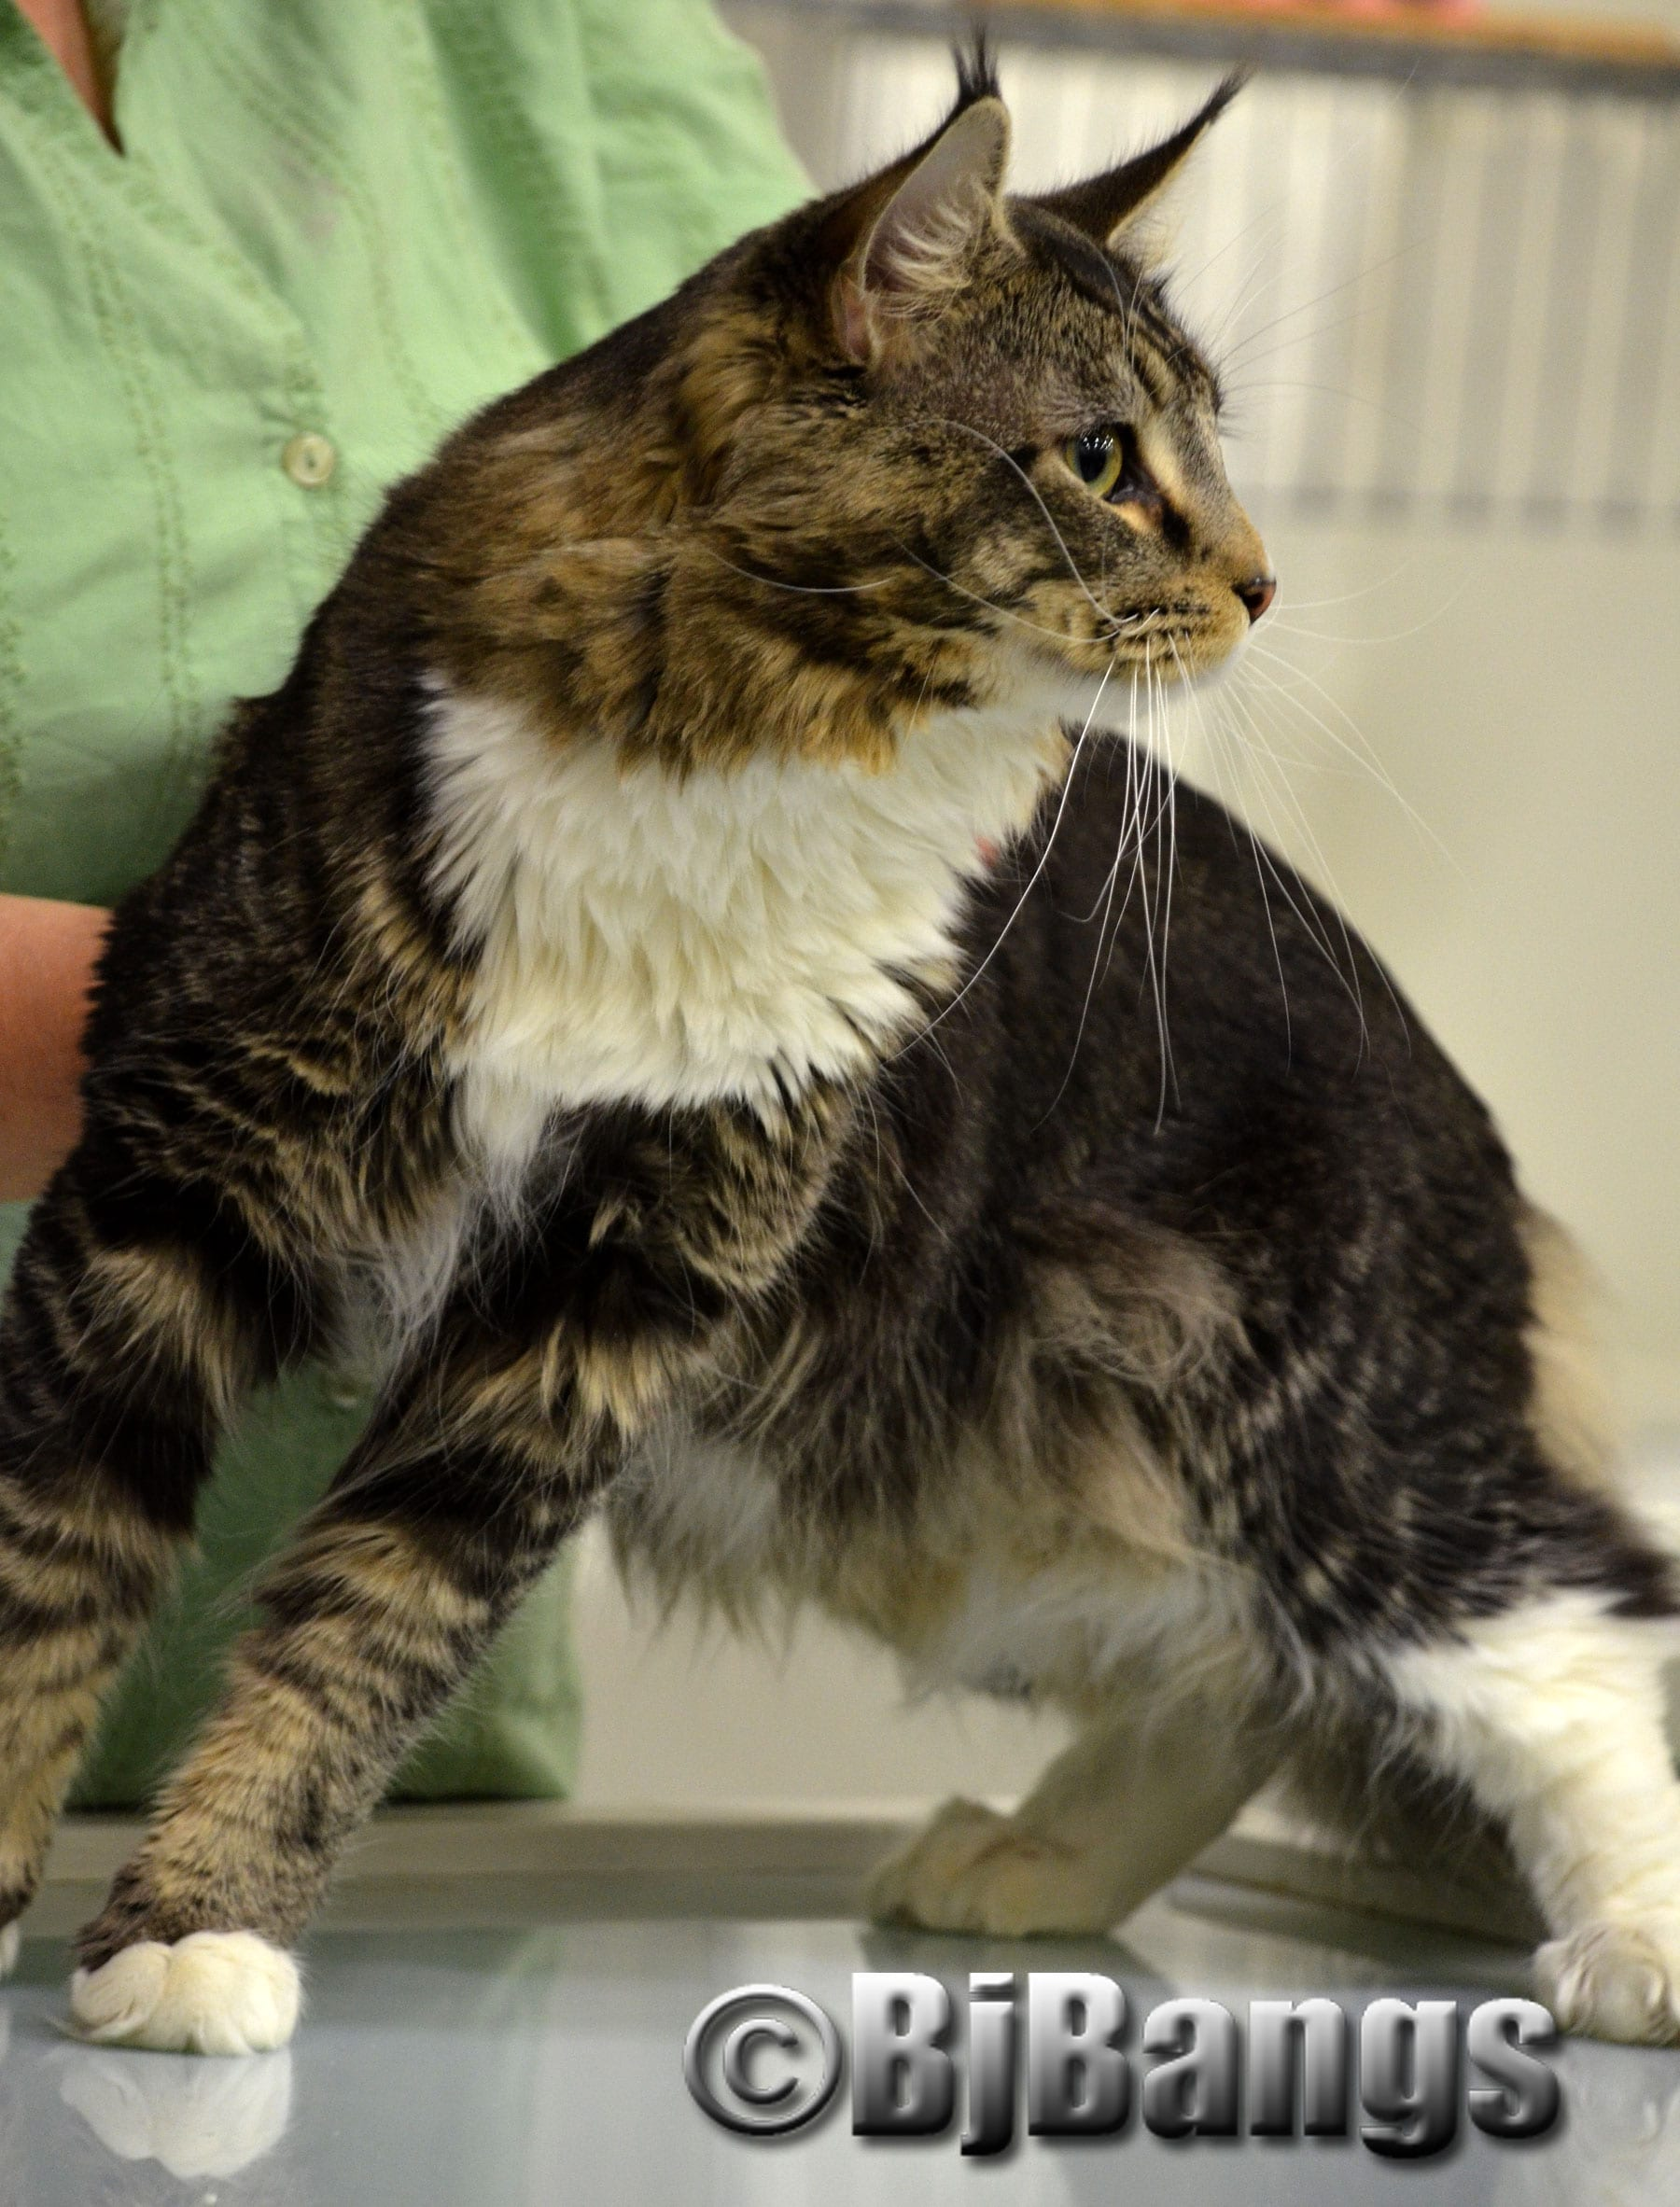 Maine coon cats for adoption near me – Popular breeds of cats